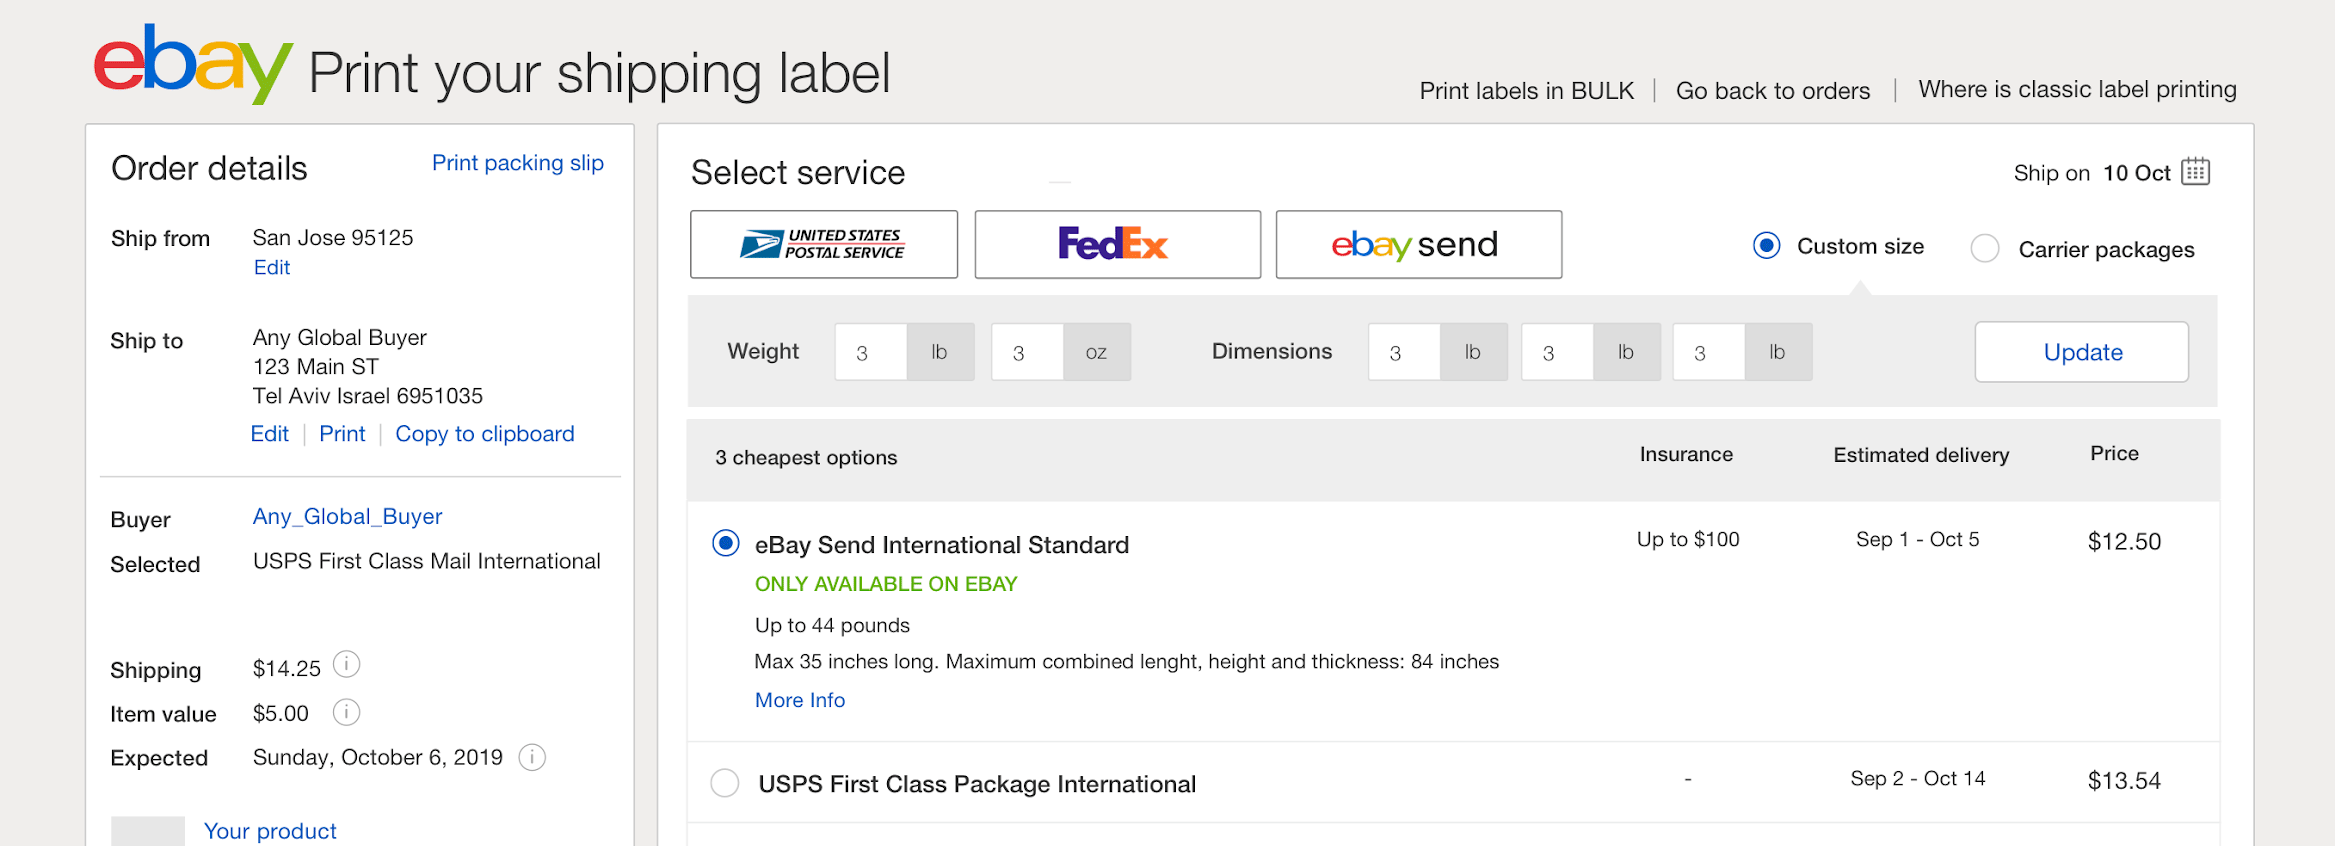 Print Your Shipping Label